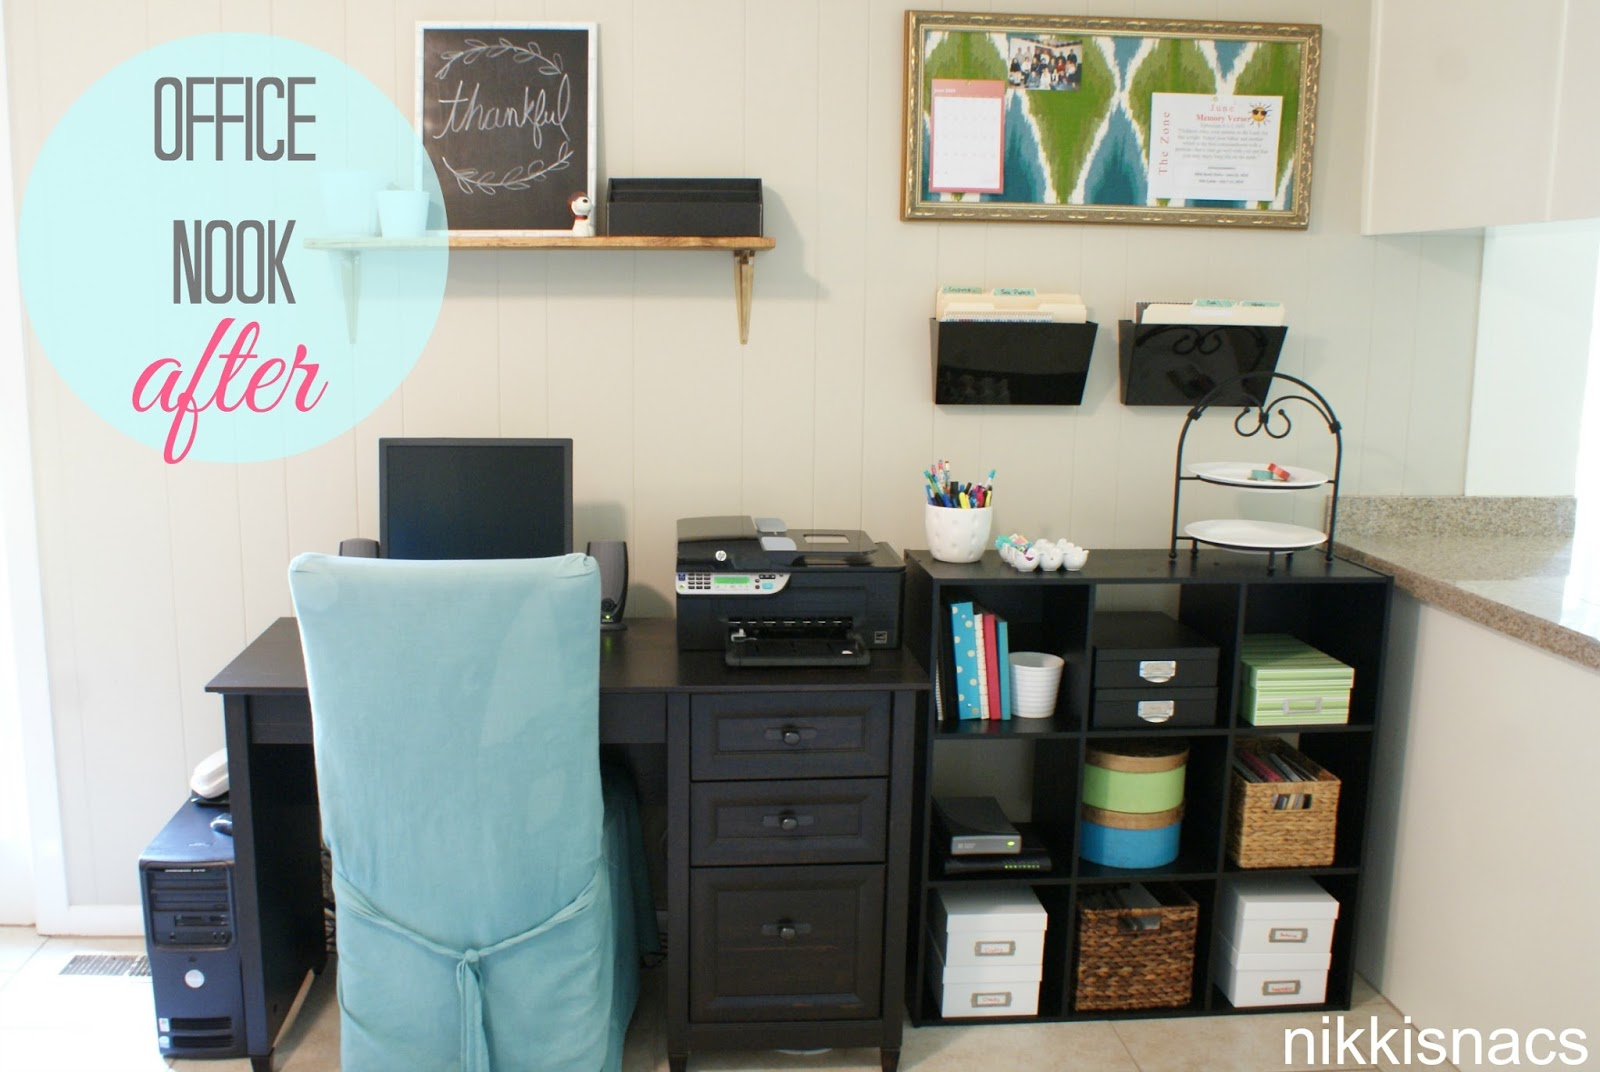 http://www.nikkisnacs.blogspot.com/2014/06/the-office-nook-reveal.html